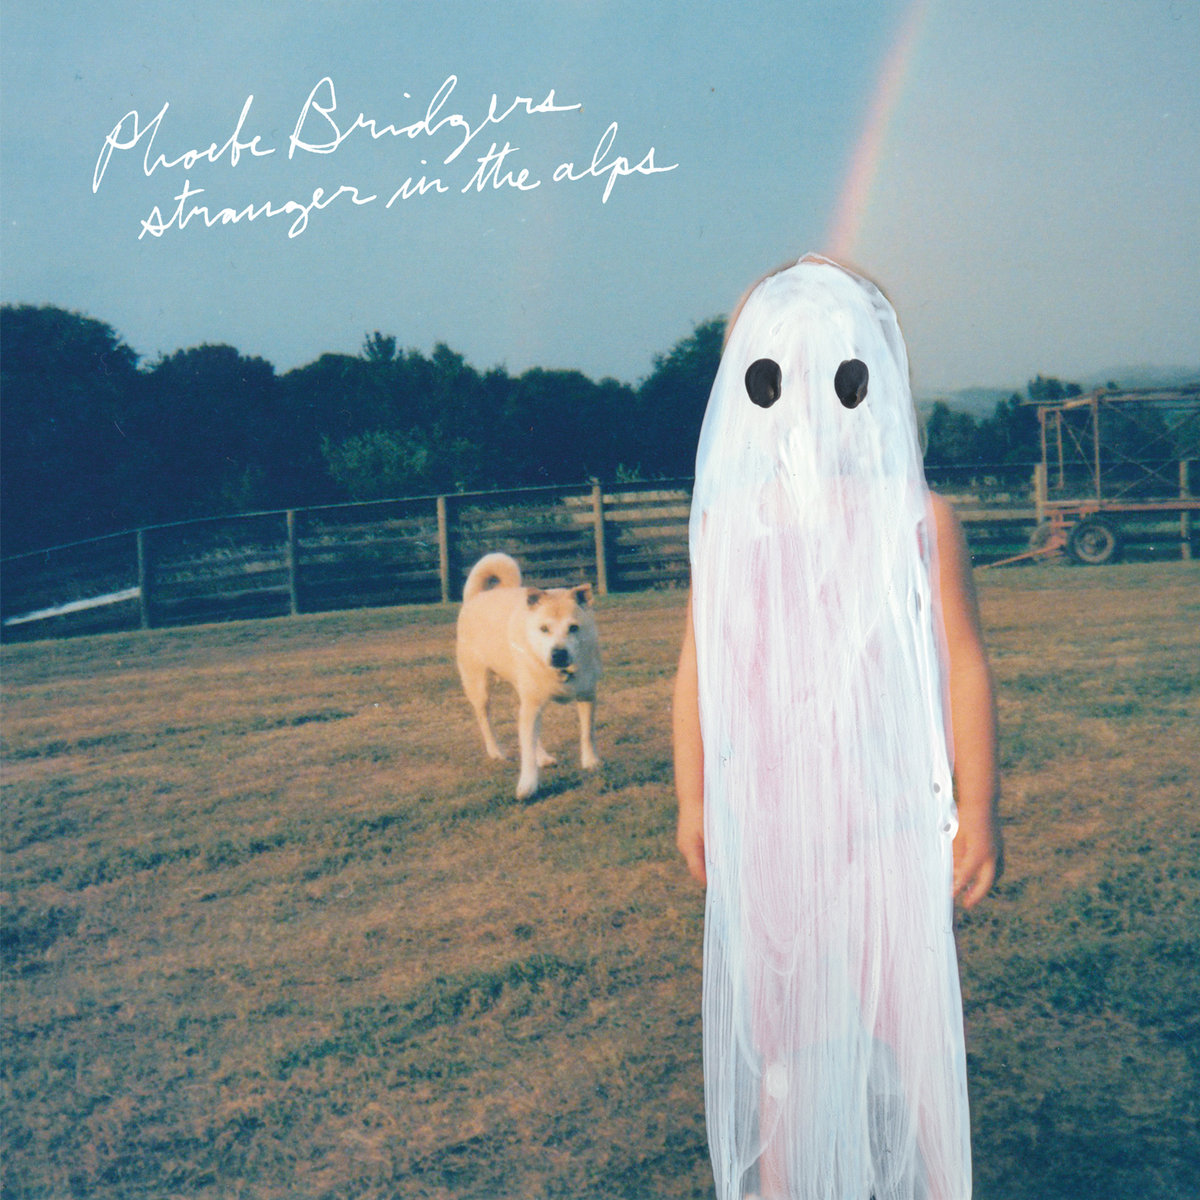 Phoebe Bridgers Stranger in the Alps Best Alt-Folk of 2017